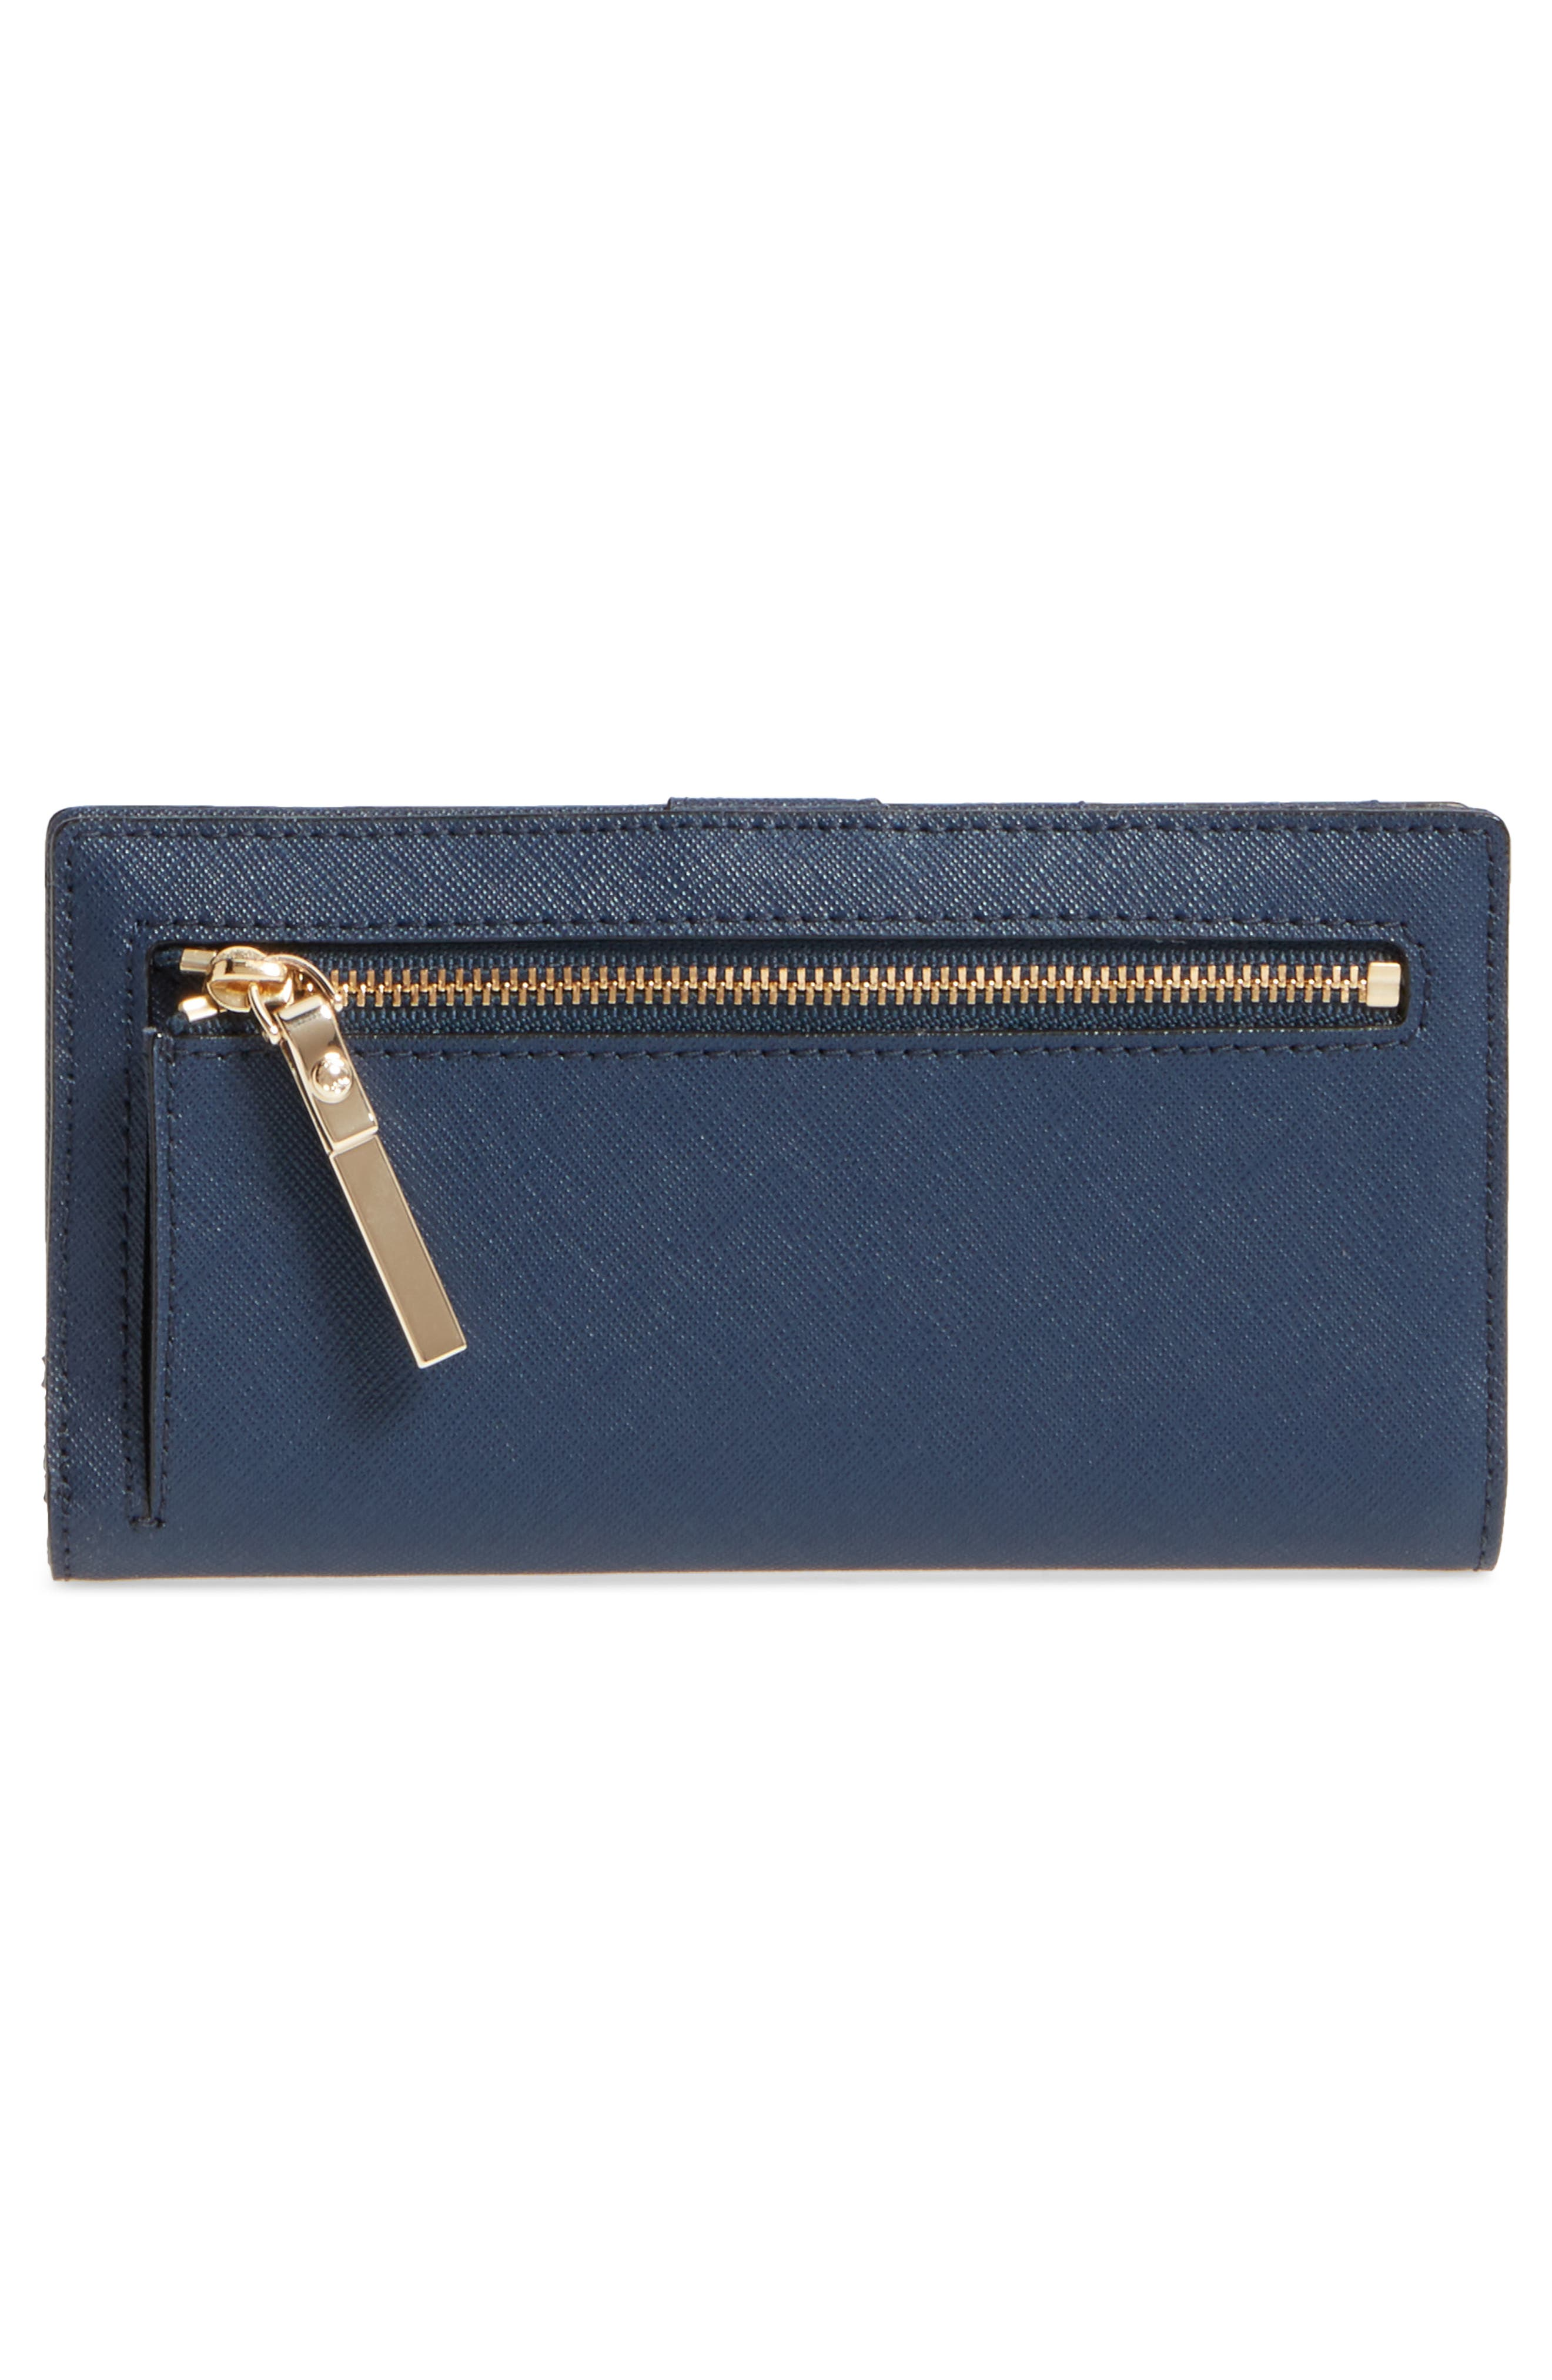 'cameron street - stacy' textured leather wallet,                             Alternate thumbnail 3, color,                             255